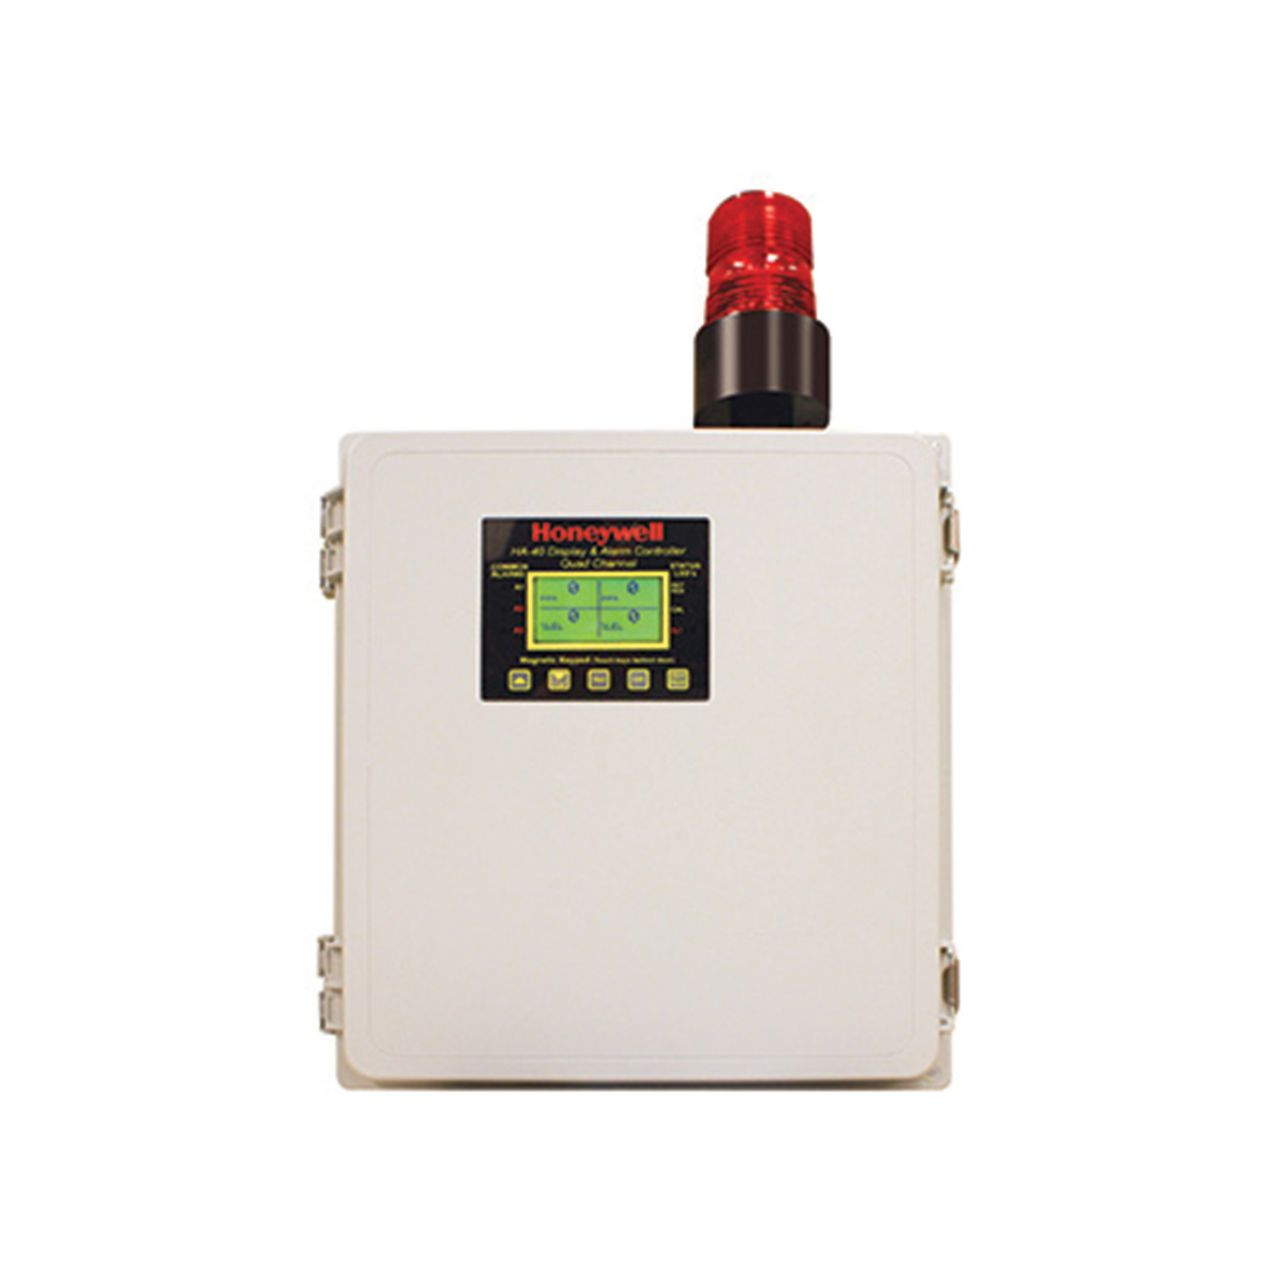 HA40 Digital Gas Controller_4